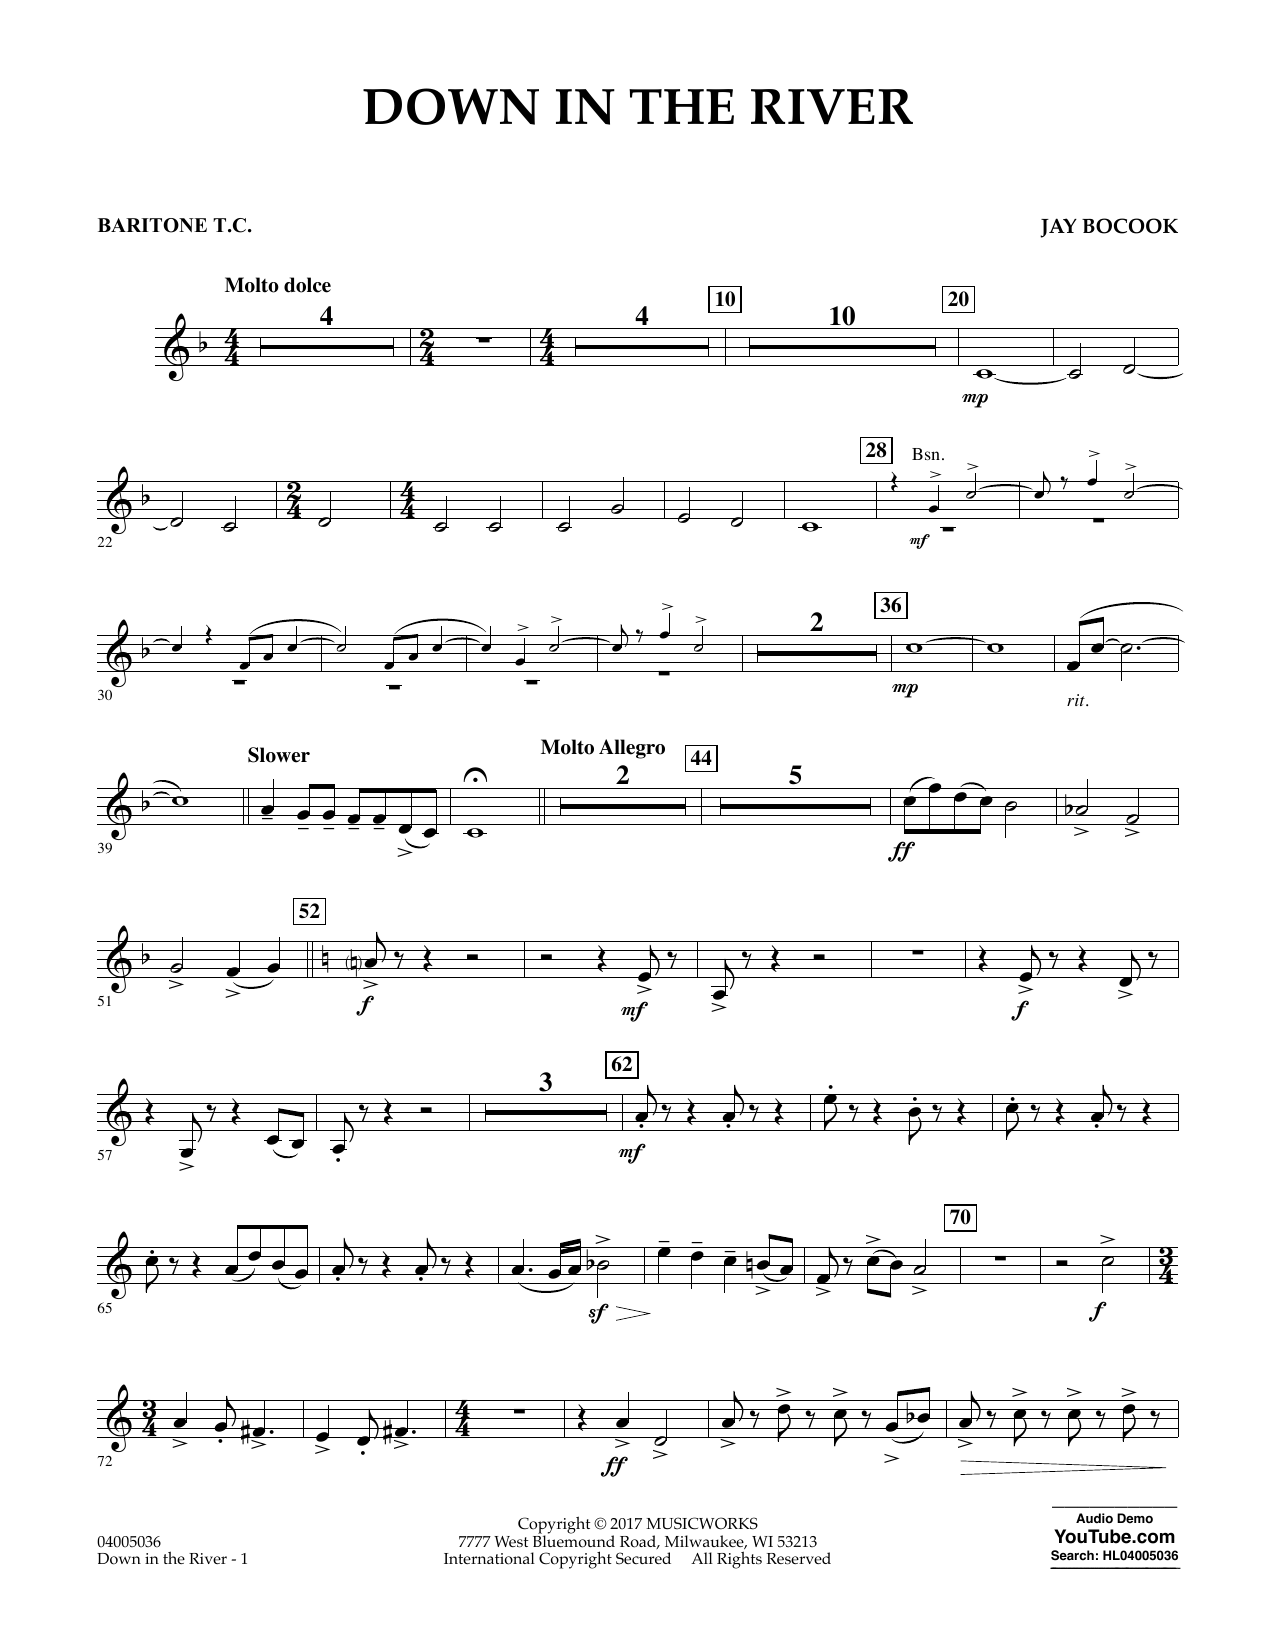 Down in the River - Baritone T.C. Sheet Music